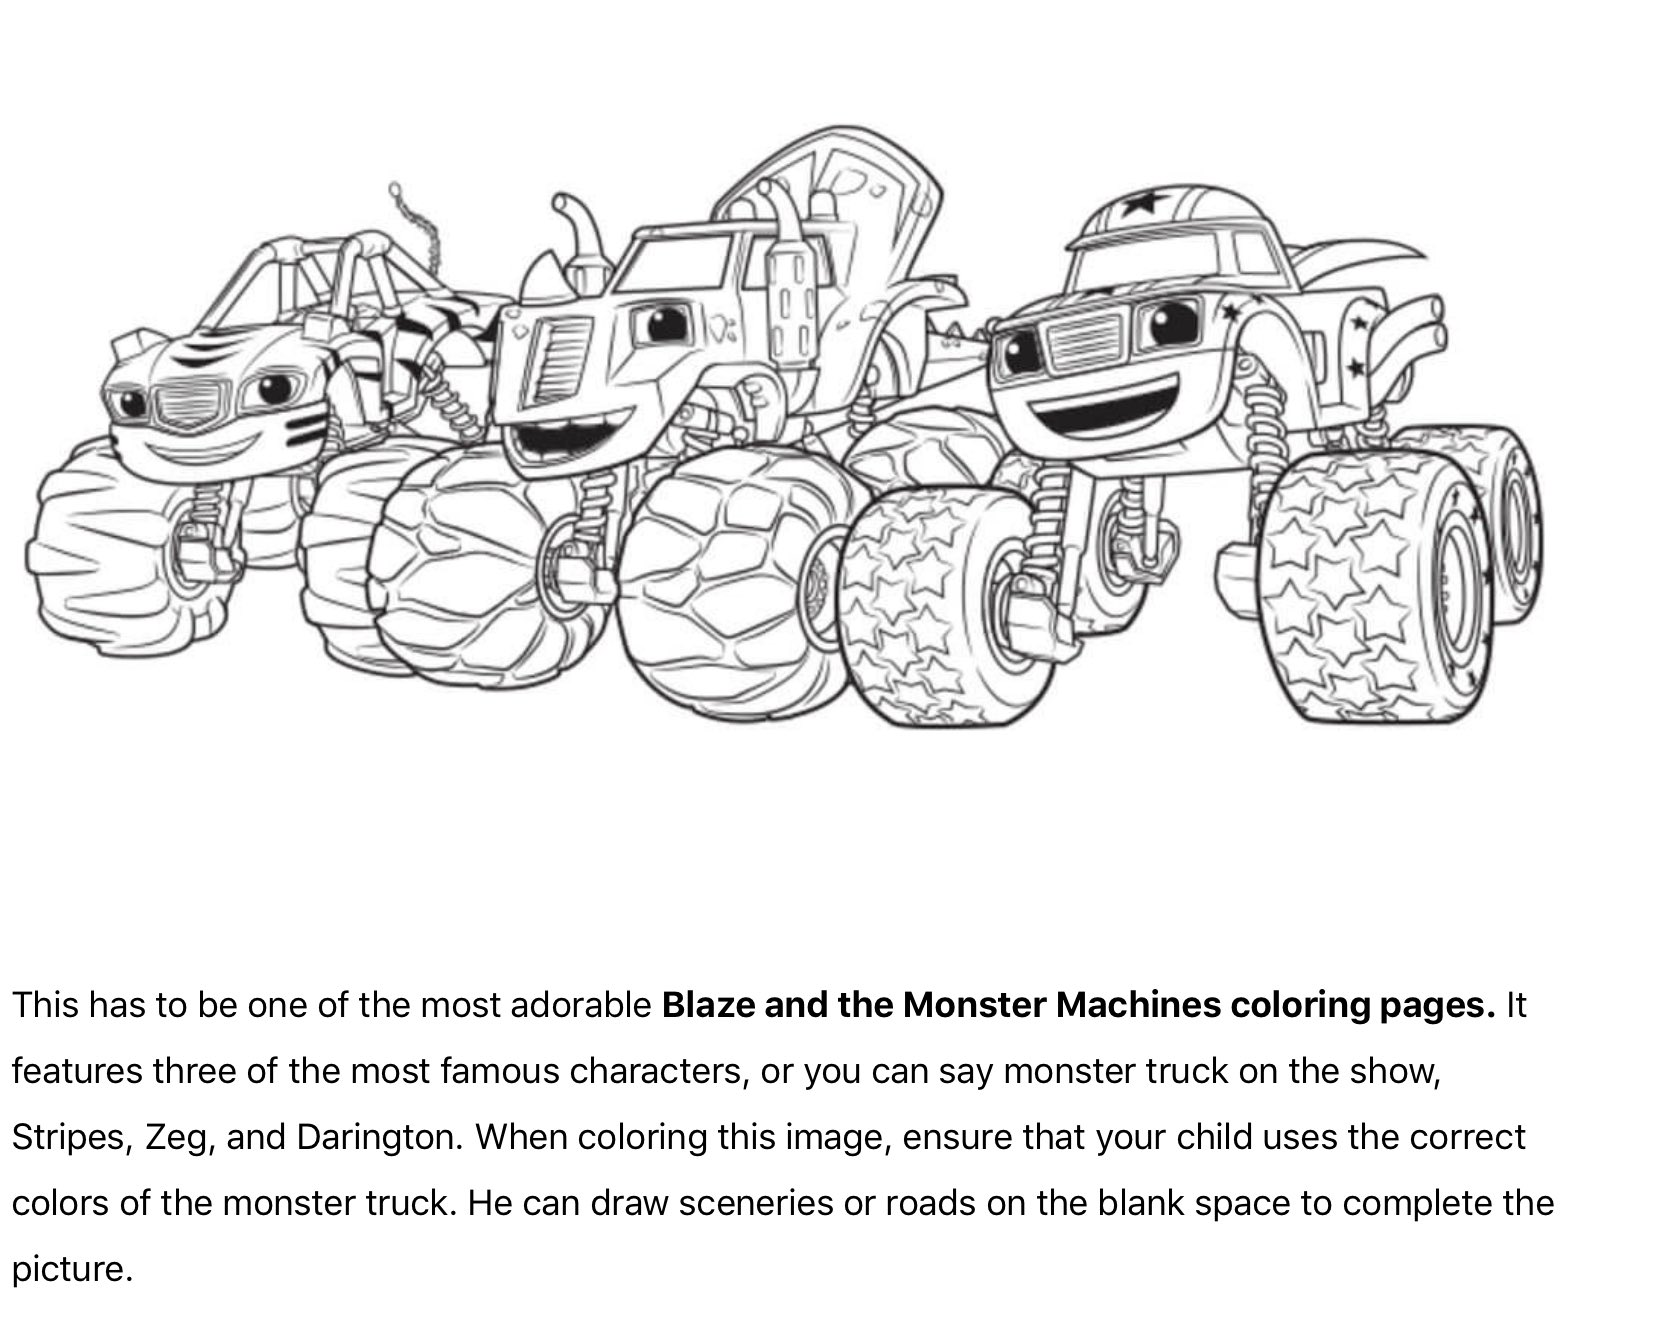 The Beef Baron On Twitter When Colouring This Image Ensure That Your Child Uses The Correct Colours Of The Monster Truck Alright Colouring Cop Https T Co 1sfzm0jnvv